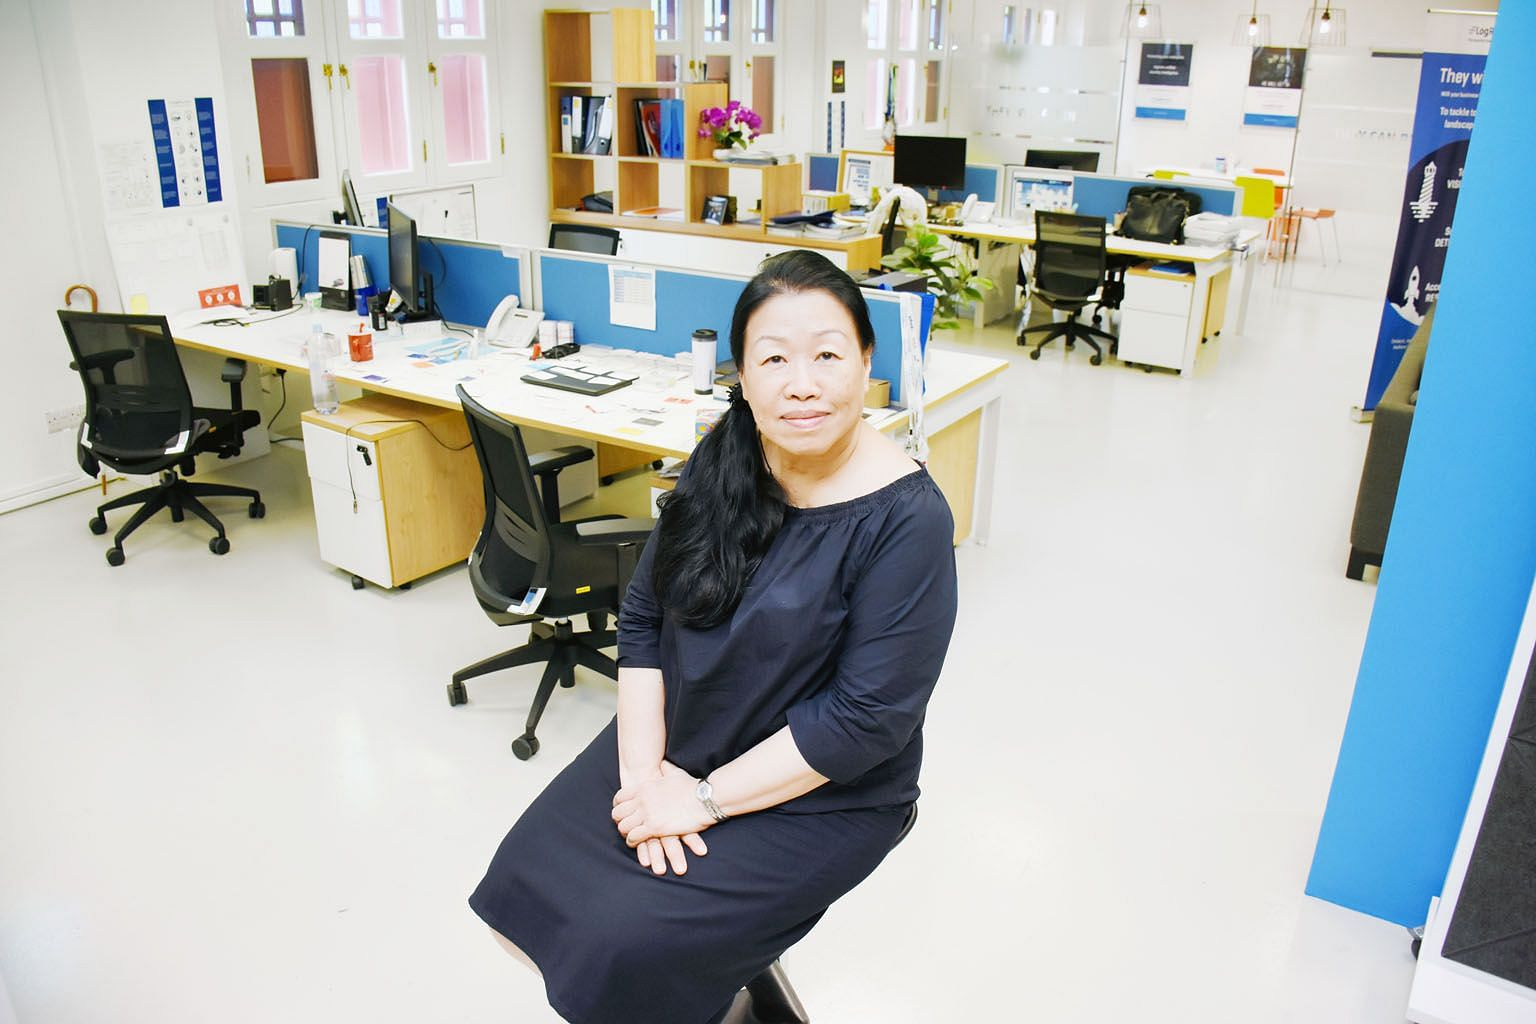 Madam Ivy Lim was hired by LogRhythm in March as a telesales executive and quickly became the company's best-performing telesales employee in the region.